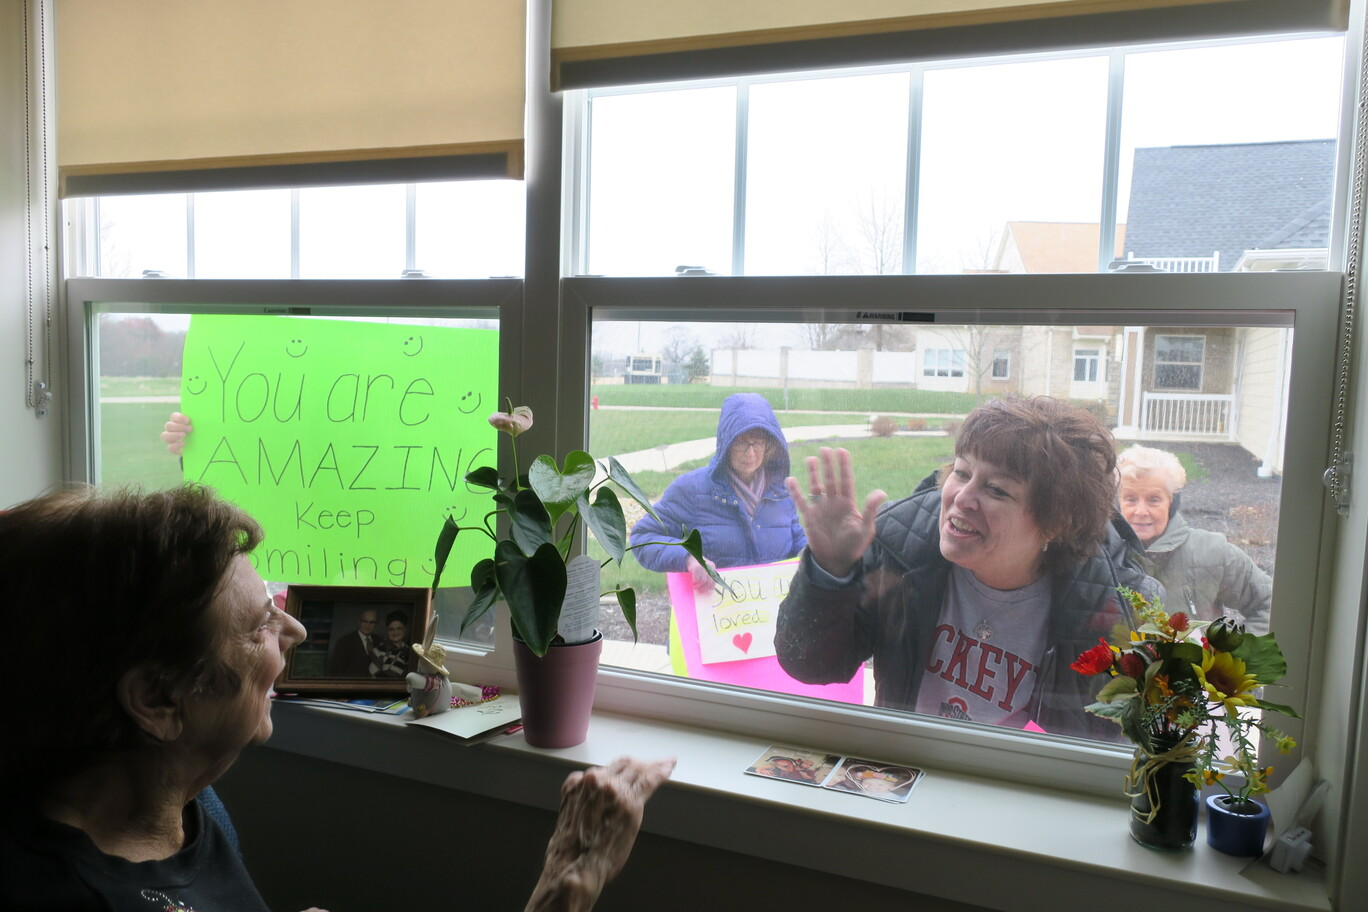 """Women outside a window hold up a sign that says """"You are amazing. Keep smiling."""" to an elderly woman inside during COVID-19."""